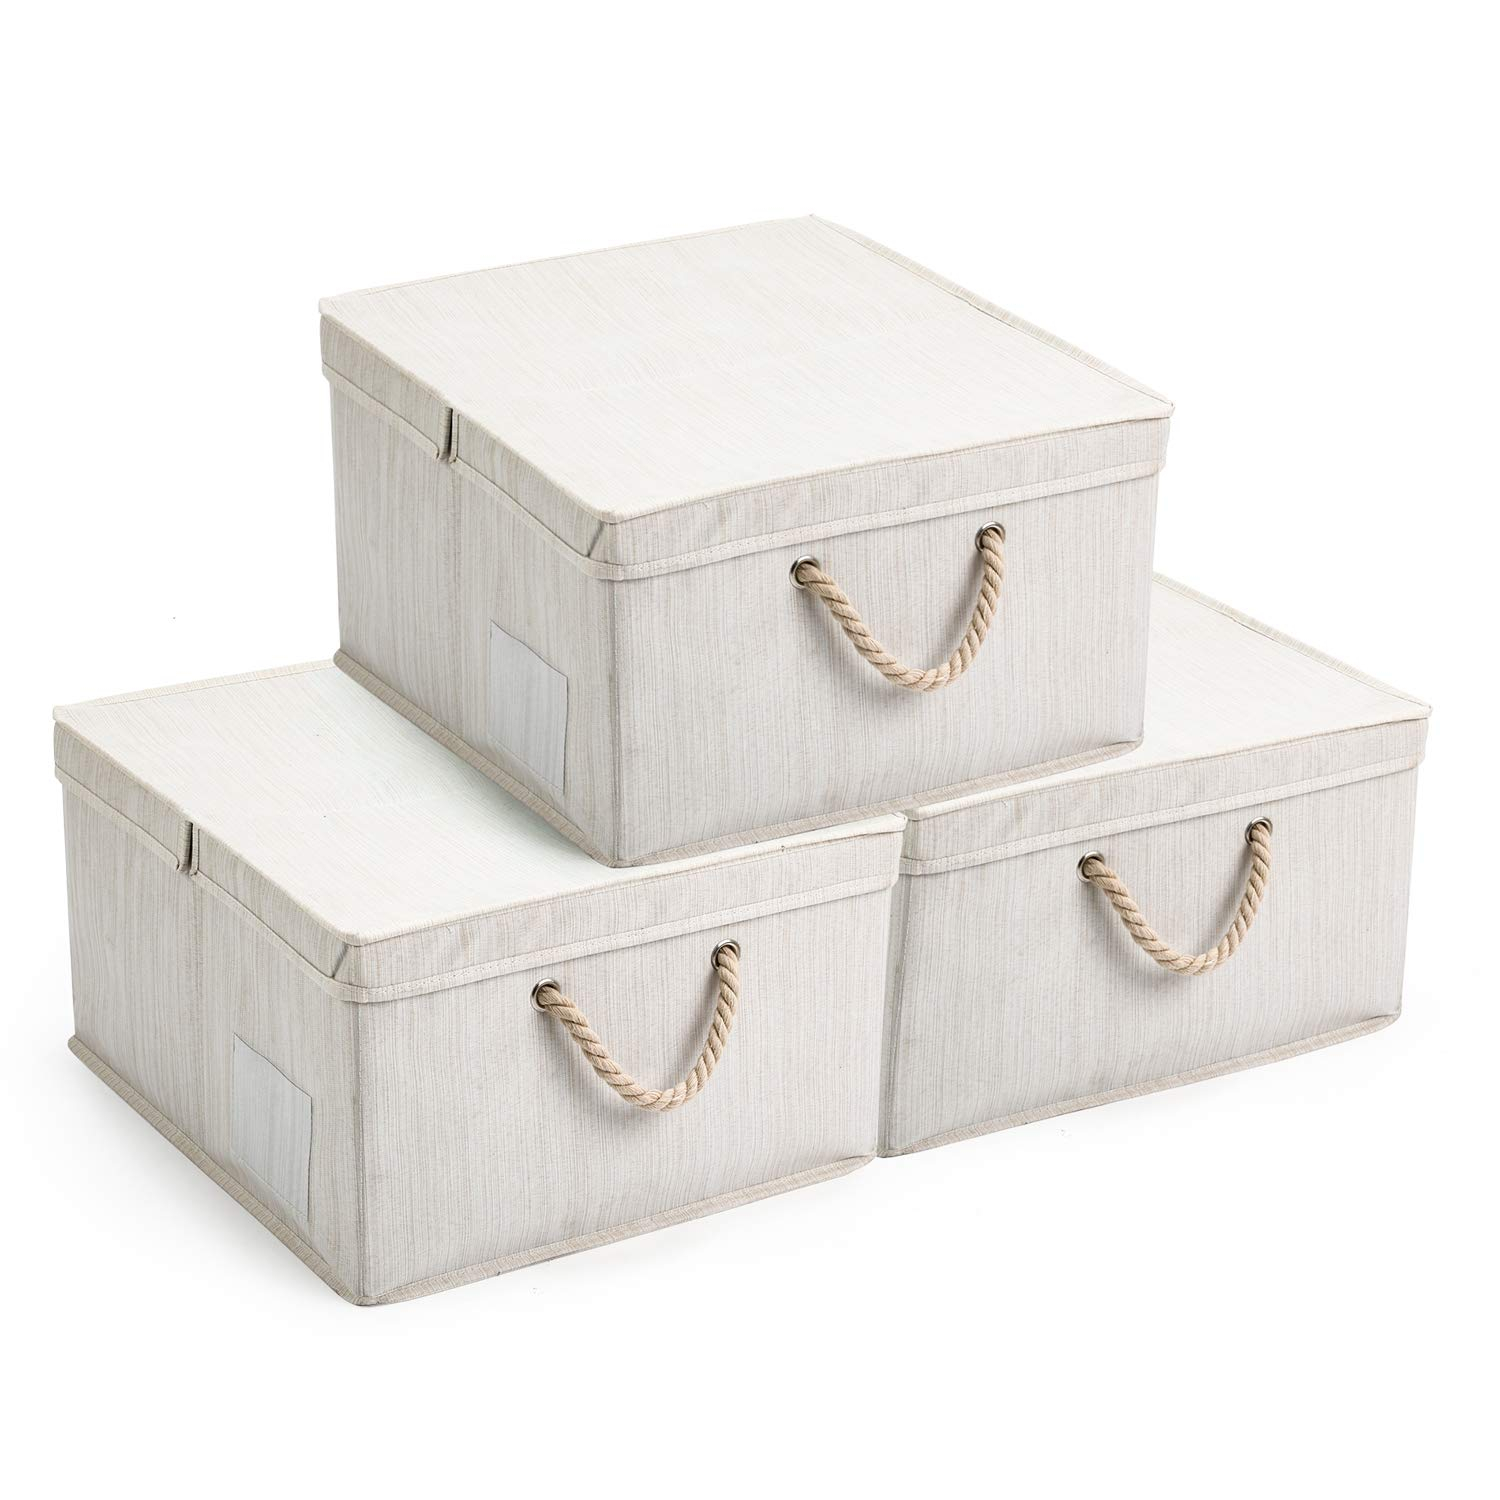 Maidmax Foldable Storage Bins With A Half Or Full Lid Transparent pertaining to measurements 1500 X 1500